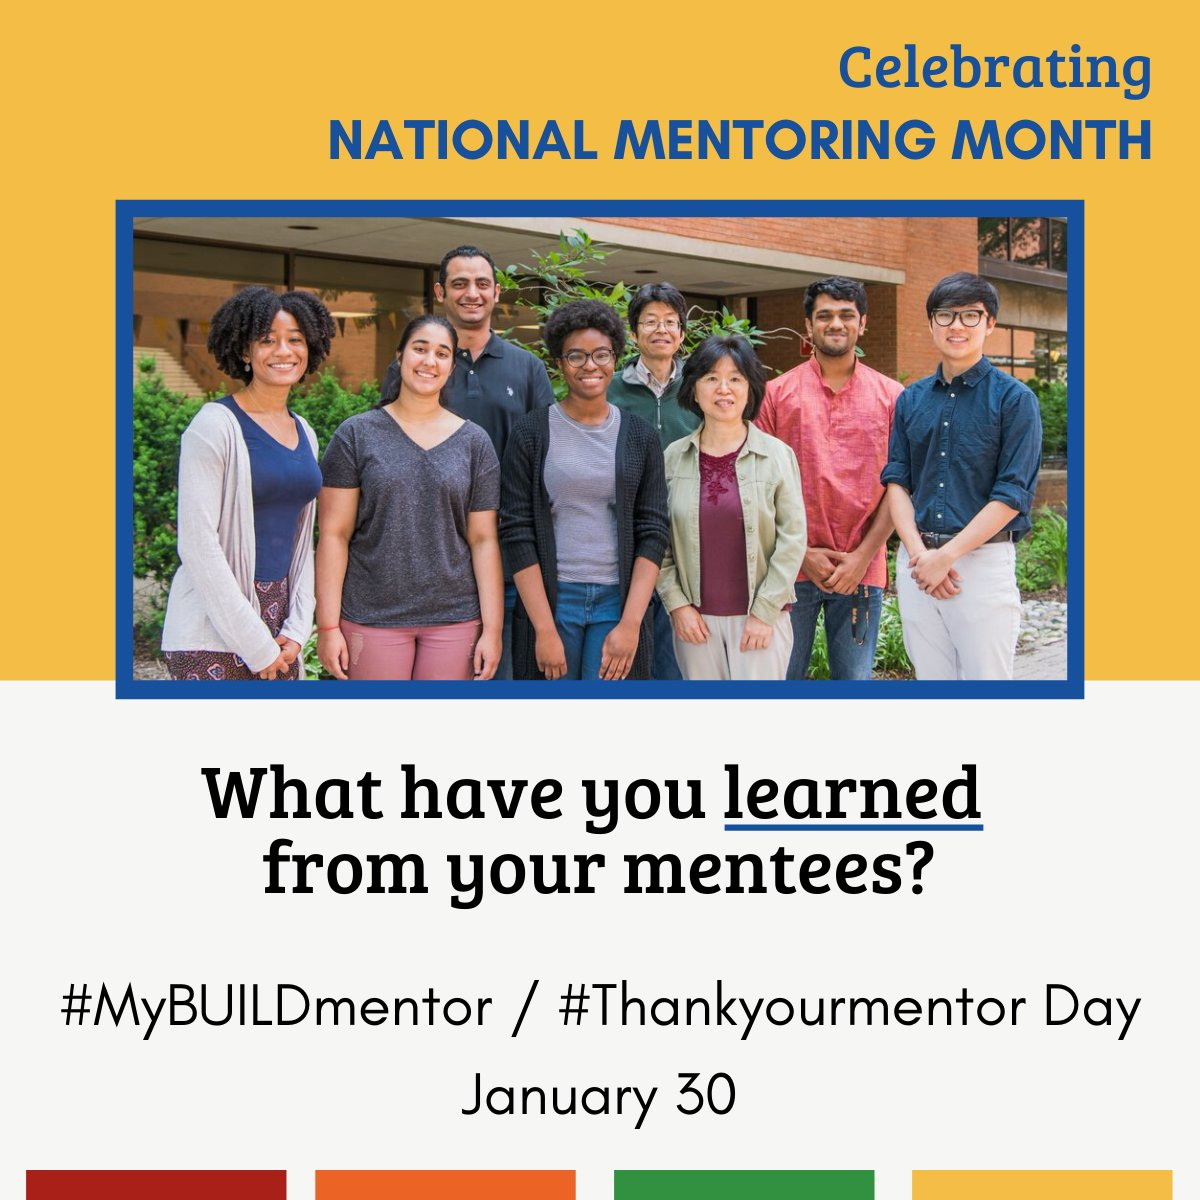 Mentors, what have you learned from your mentees? #MyBUILDmentor #NationalMentoringMonth